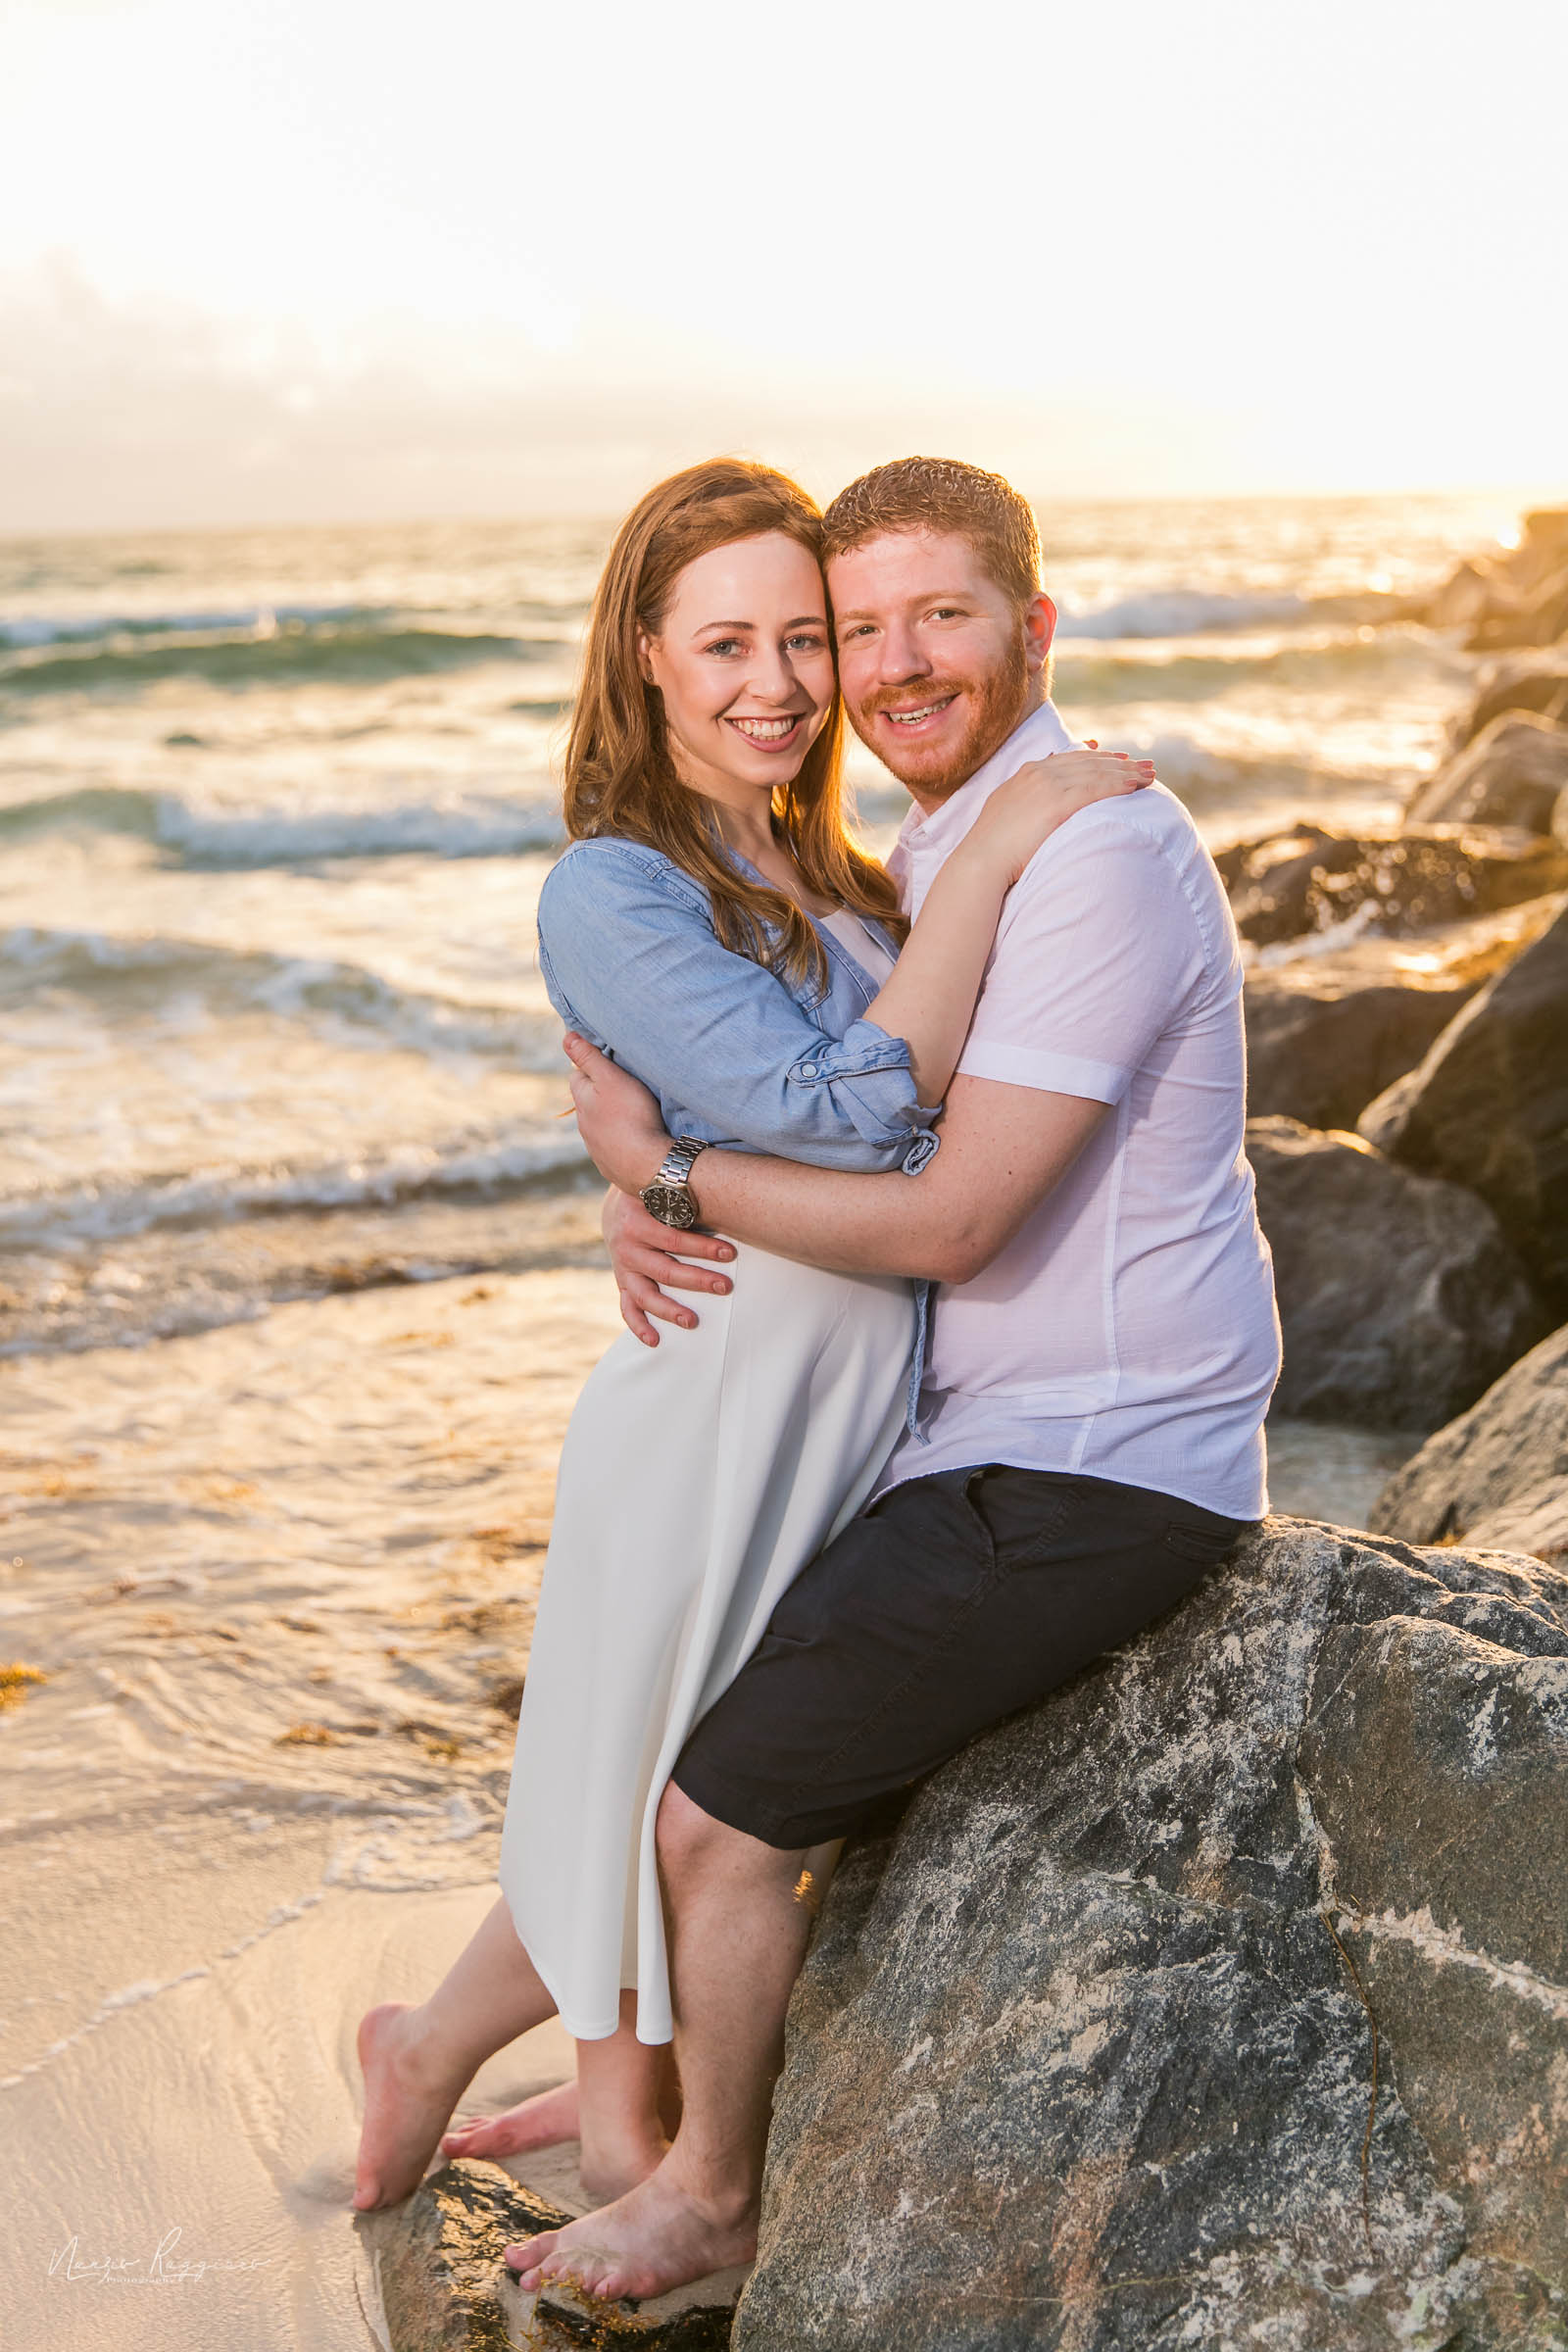 Engagement and Wedding Photographer in Miami